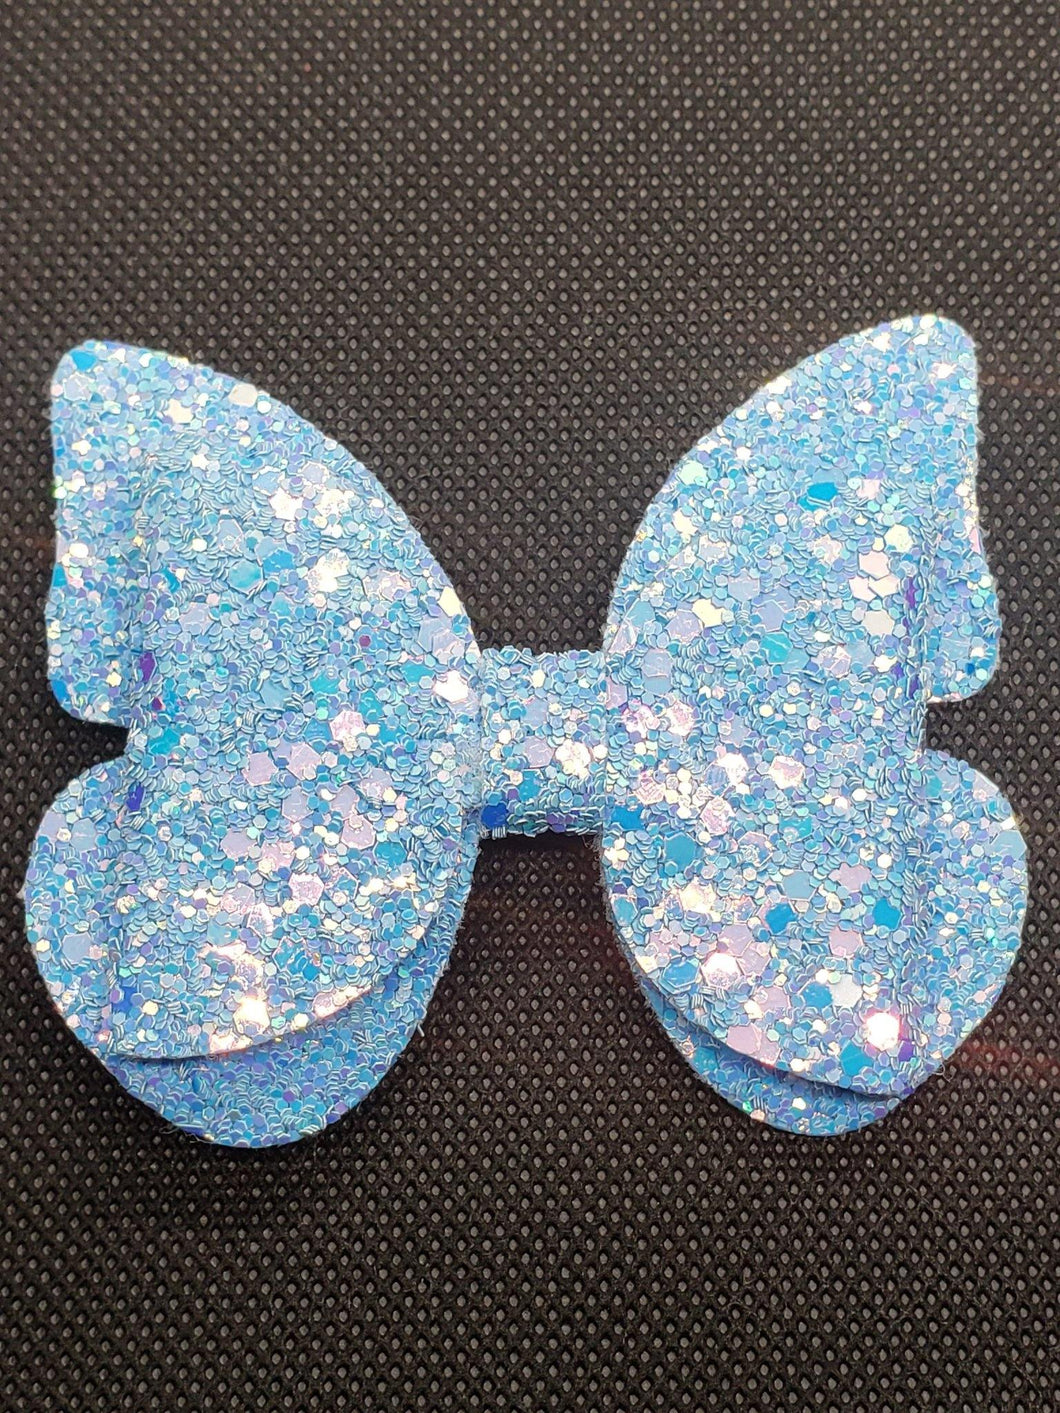 Butterfly Bow - LilChic BabyBug Boutique LLC